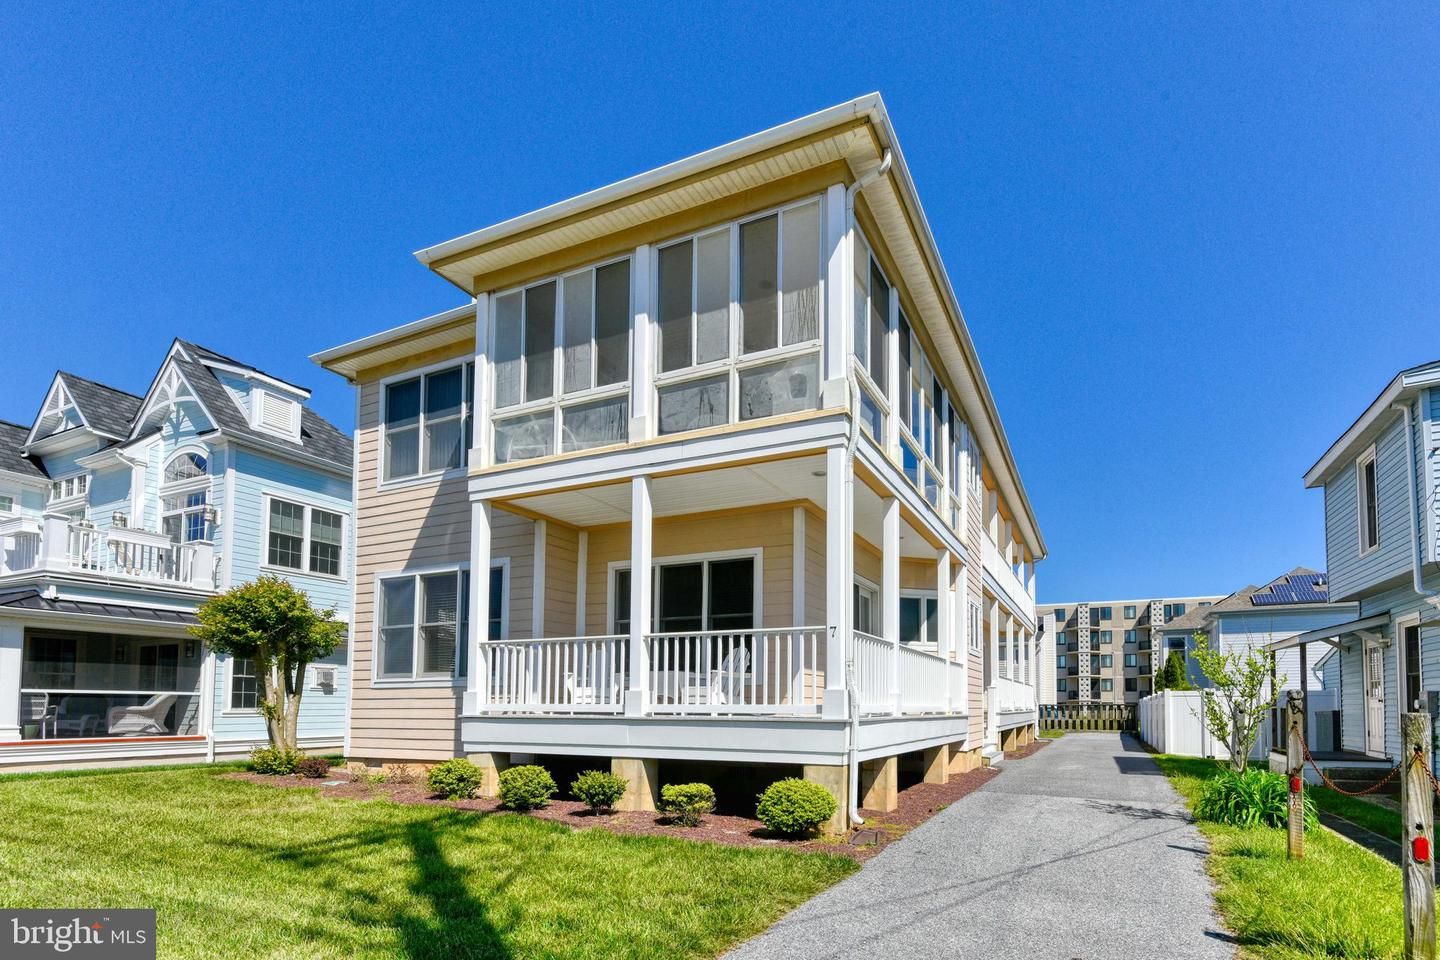 DESU140752-301729566779-2019-05-20-15-11-27 7 Olive Ave | Rehoboth Beach, DE Real Estate For Sale | MLS# Desu140752  - Coldwell Banker Resort Realty